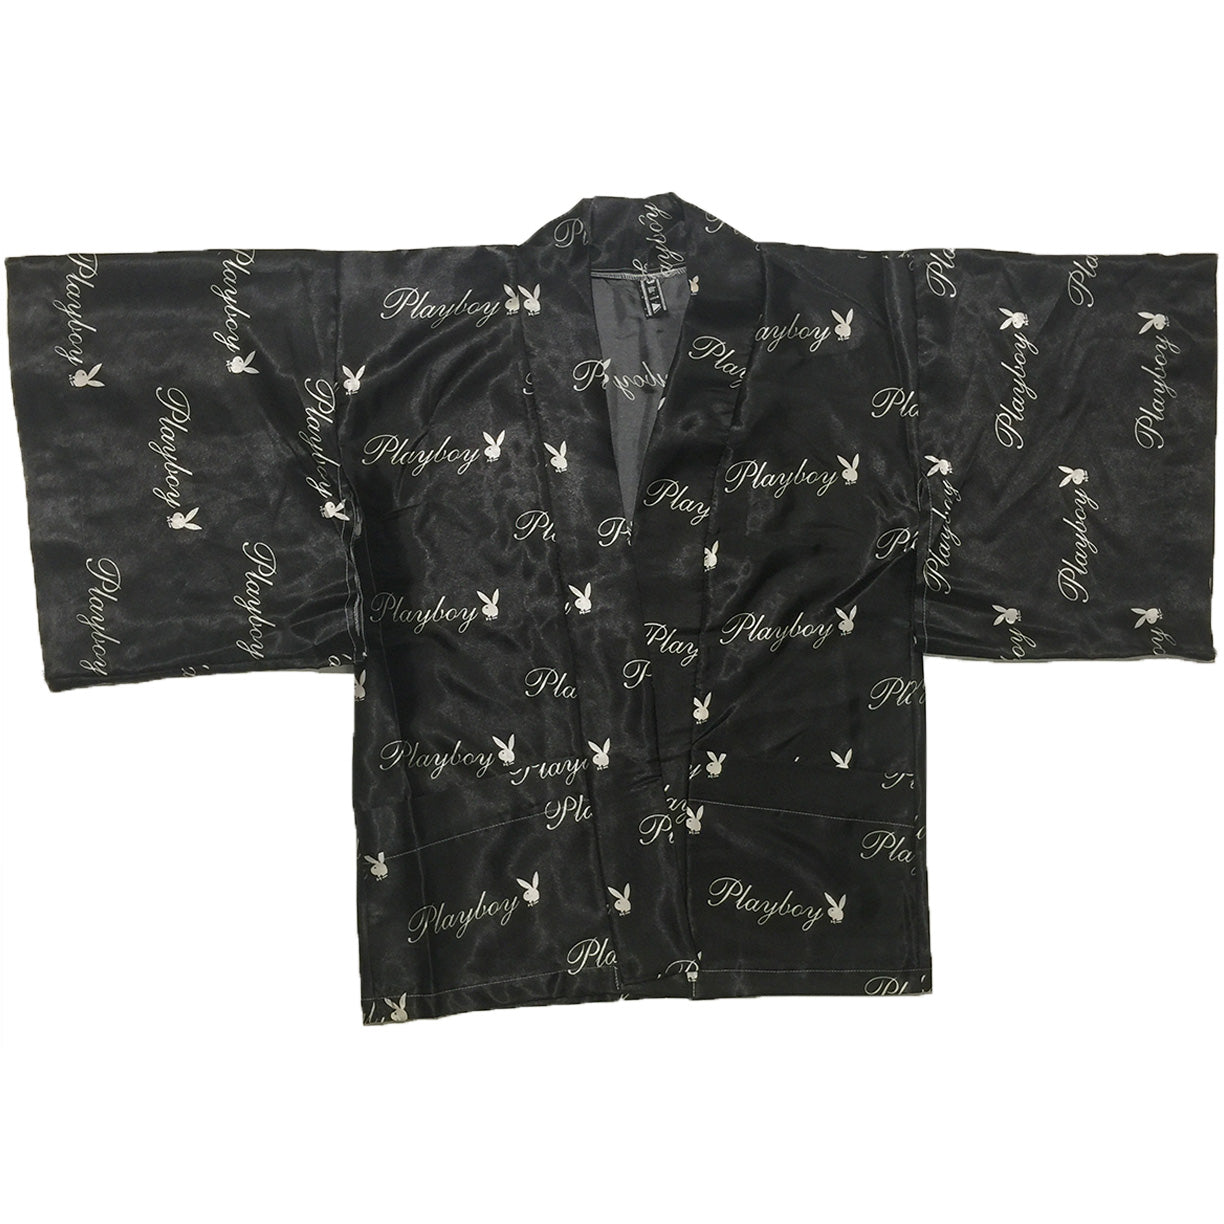 Playboy Black Silk Haori